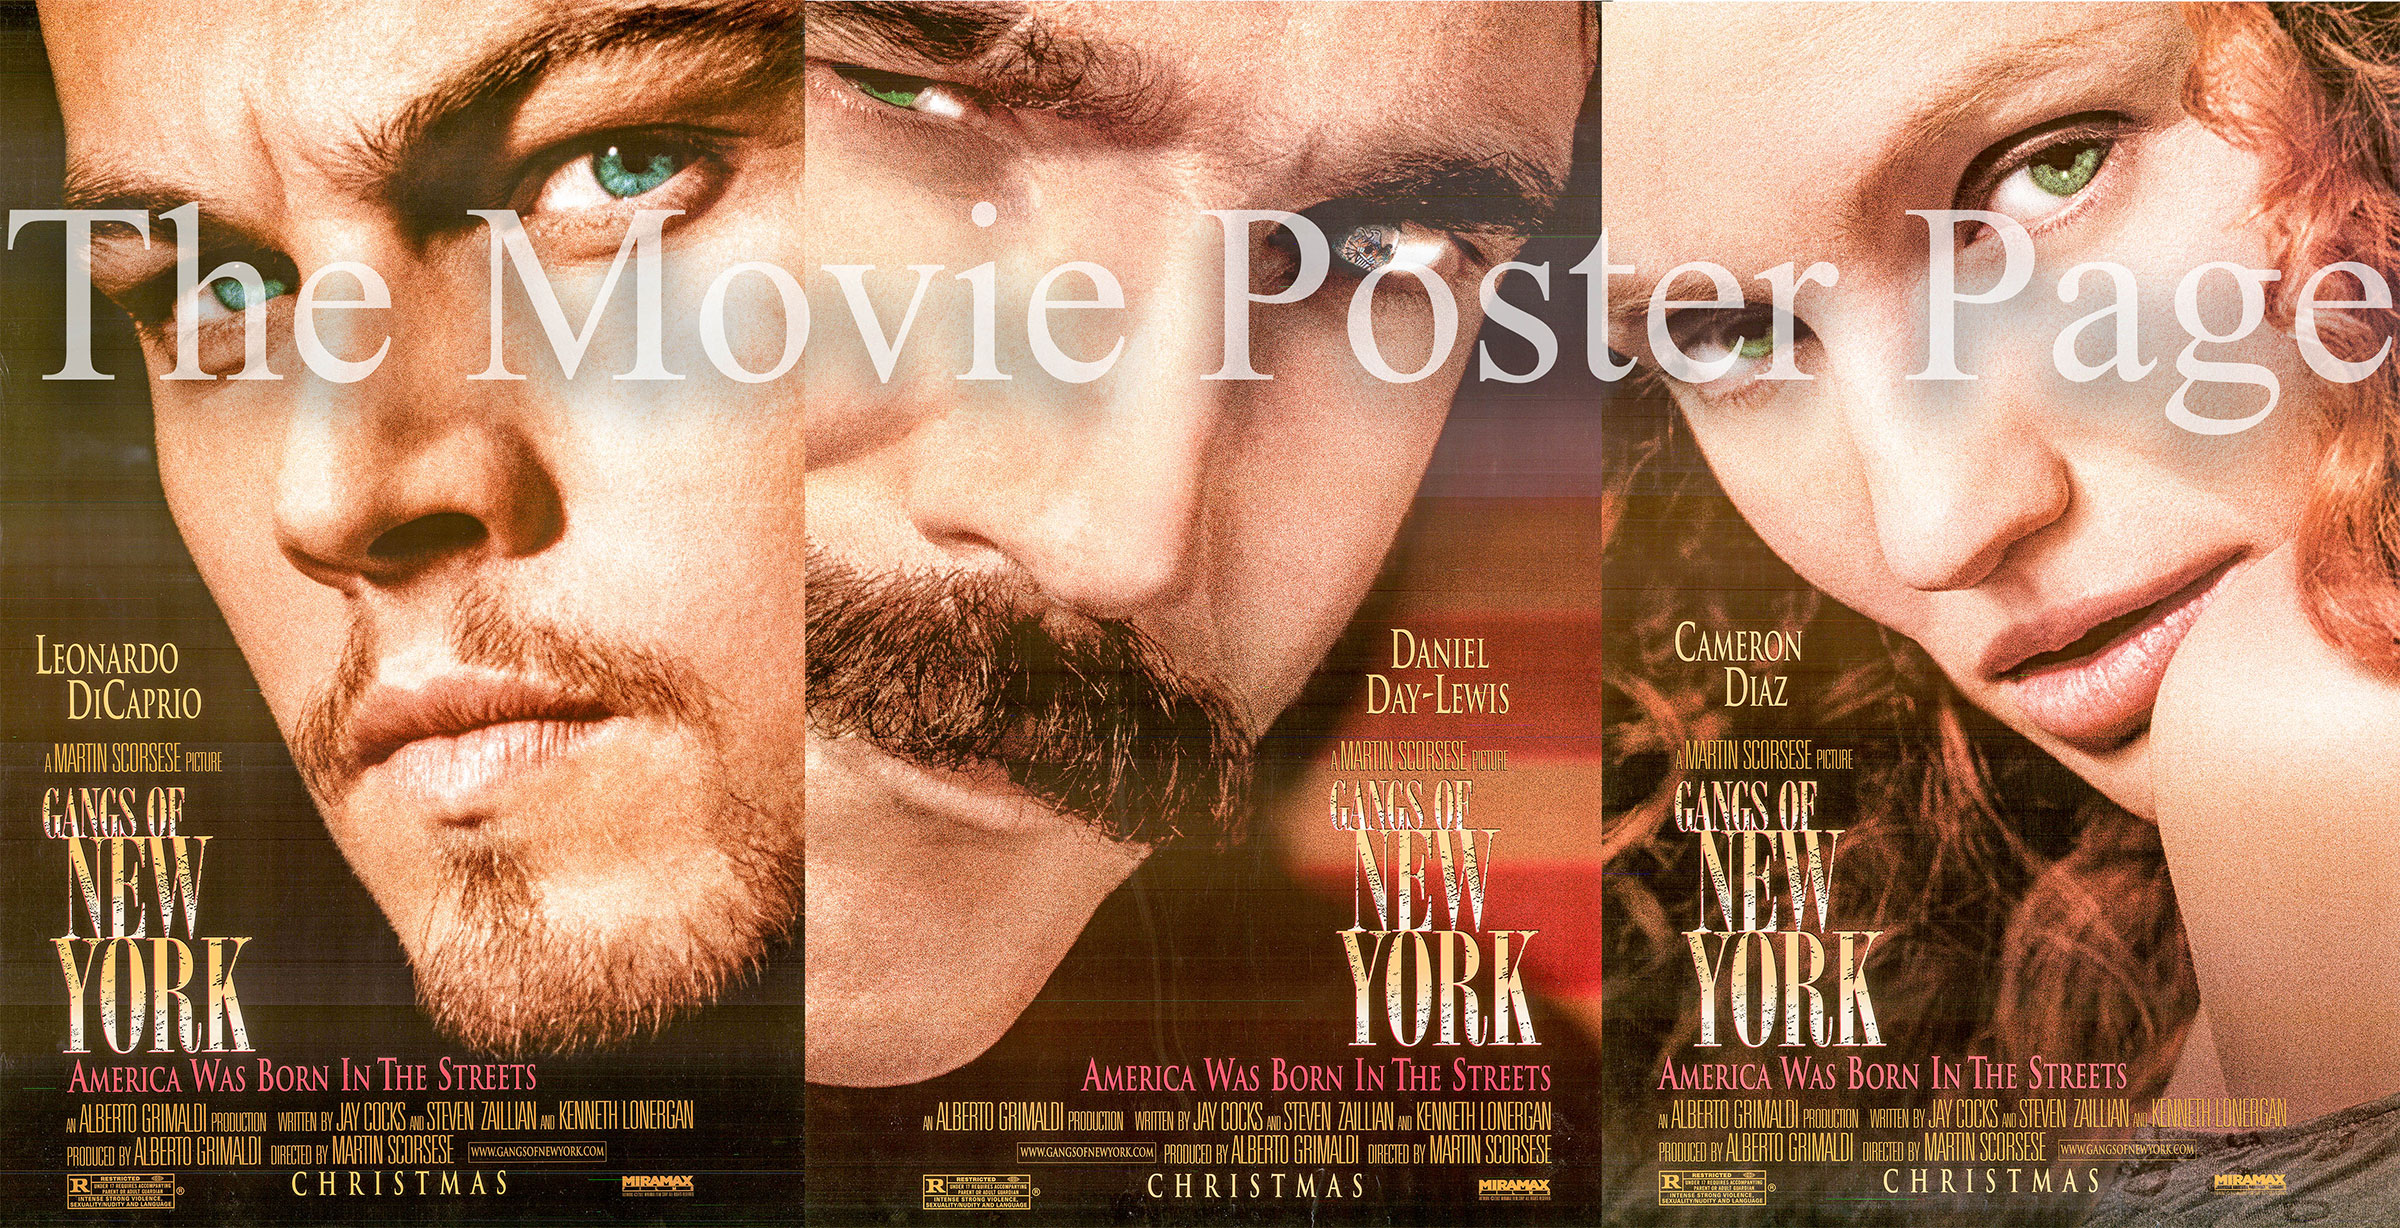 Pictured is a three poster advance set for the 2002 Martin Scorcese film The Gangs of New York.